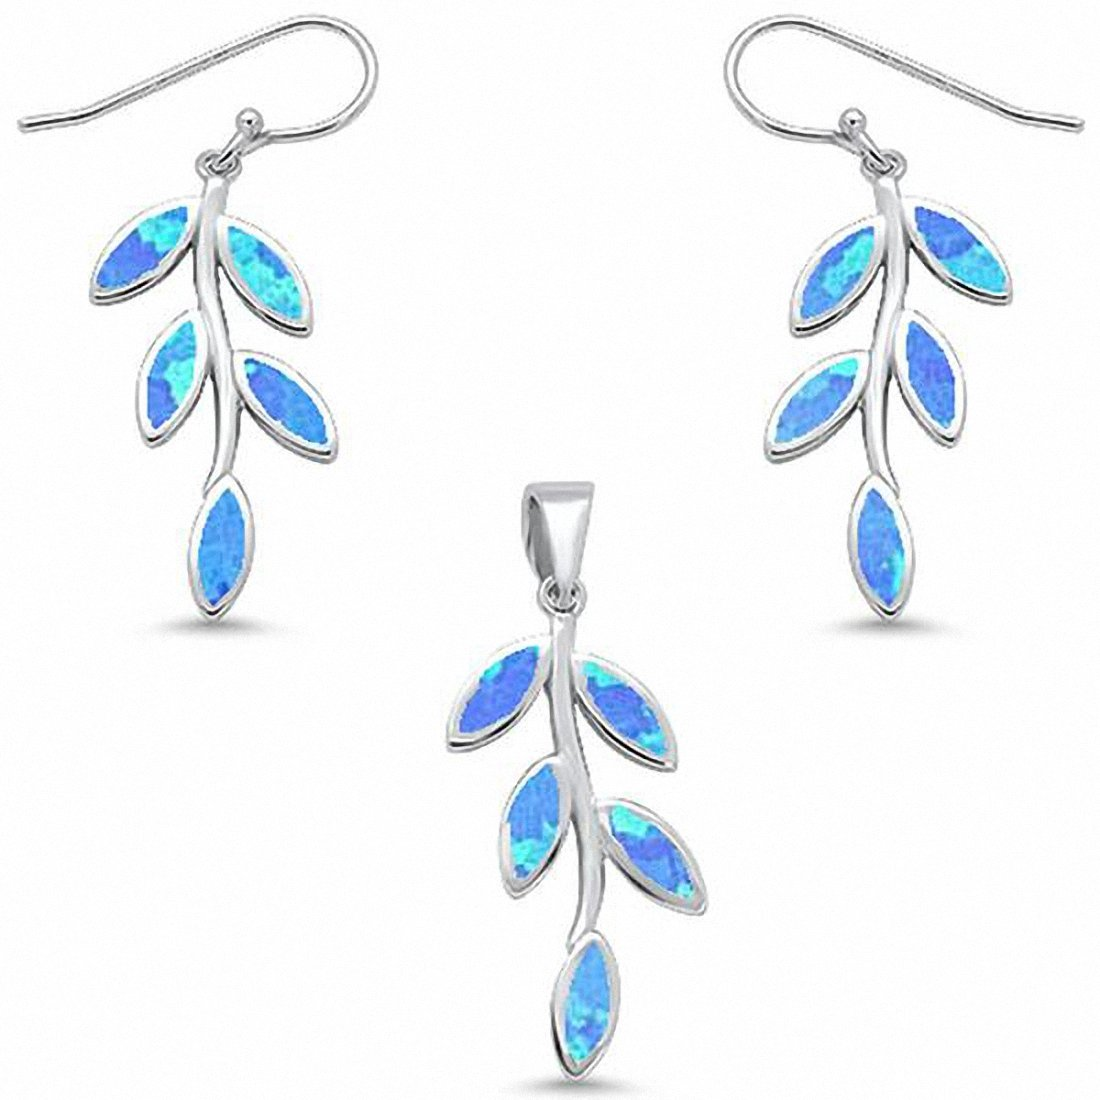 Leaf Jewelry Set Created Opal 925 Sterling Silver Choose Color